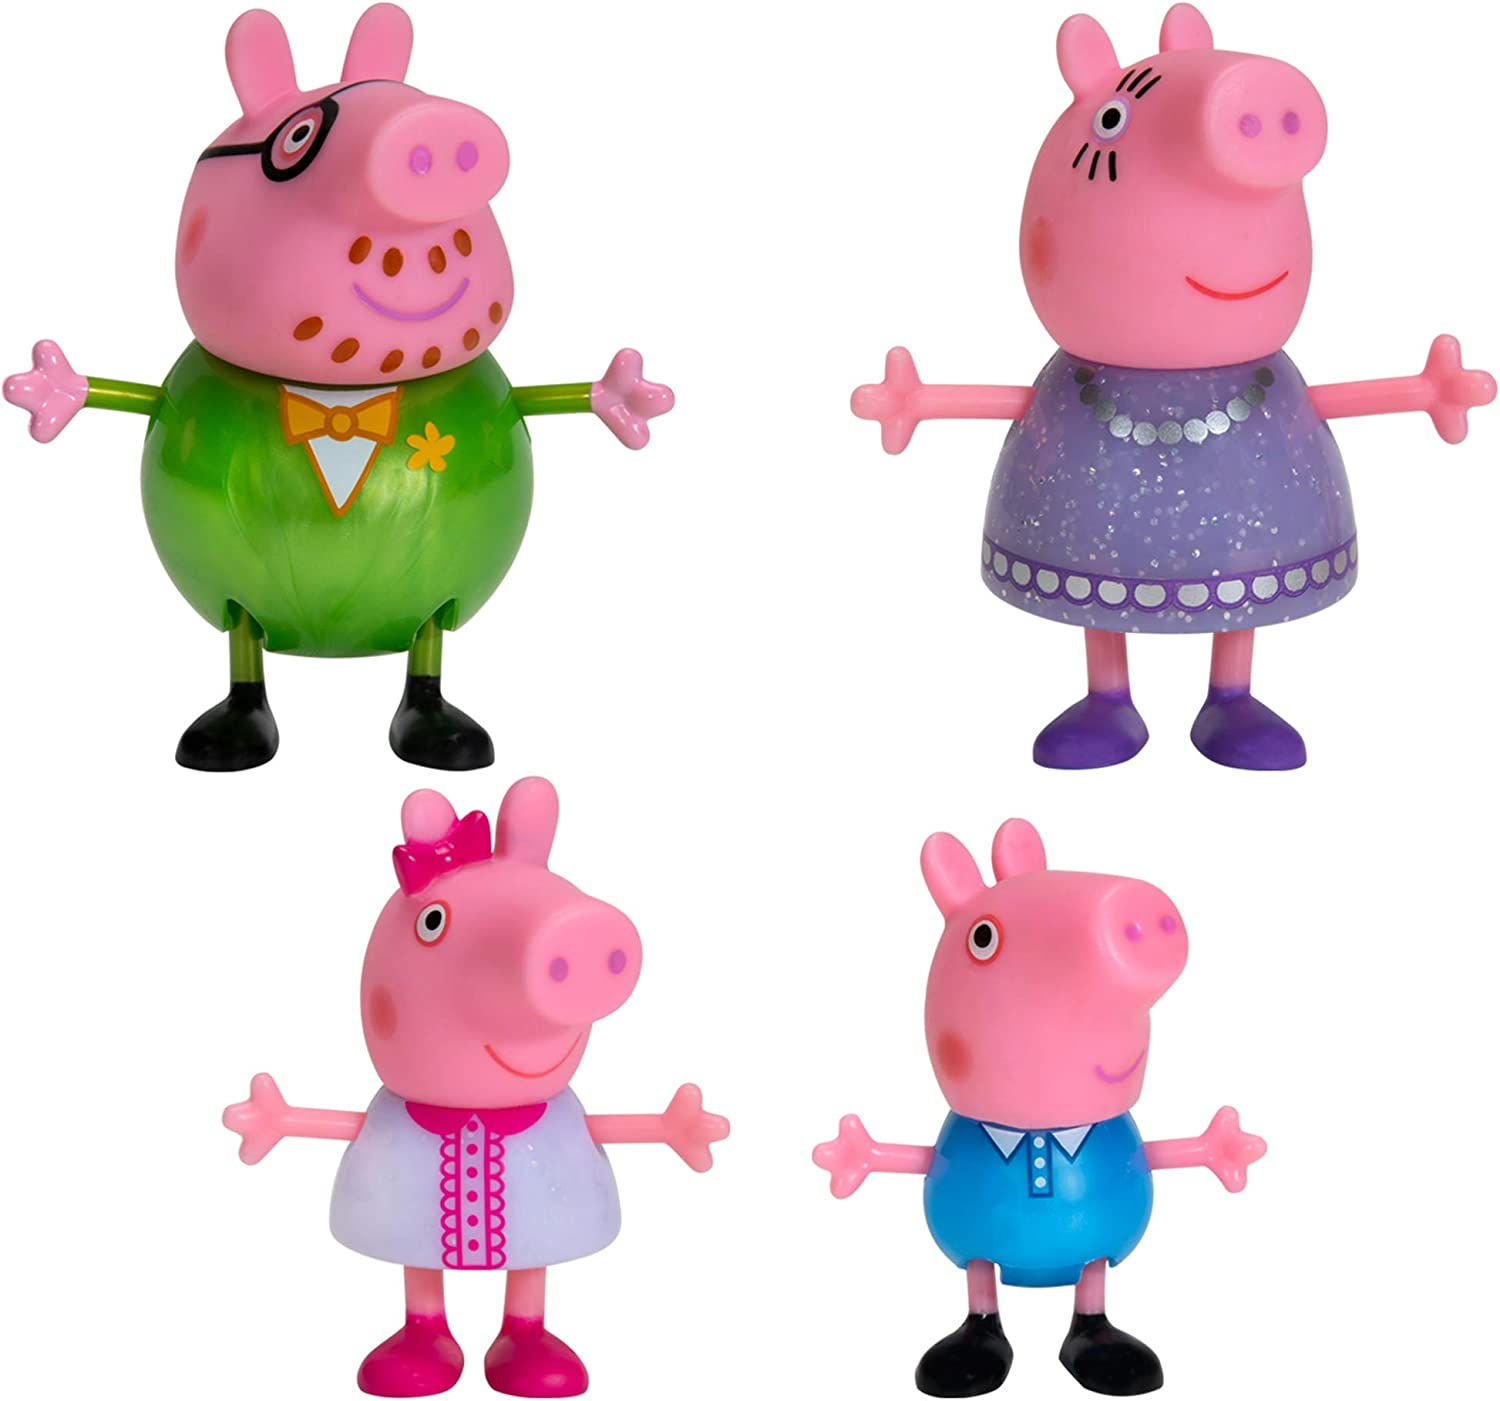 "Peppa Pig Fancy Family – 4 Figure Pack, 3"" Tall – Including Peppa Pig Characters Daddy Pig, Mummy Pig, Peppa Pig, and George – Toys for Toddlers, Kindergarteners, Kids"